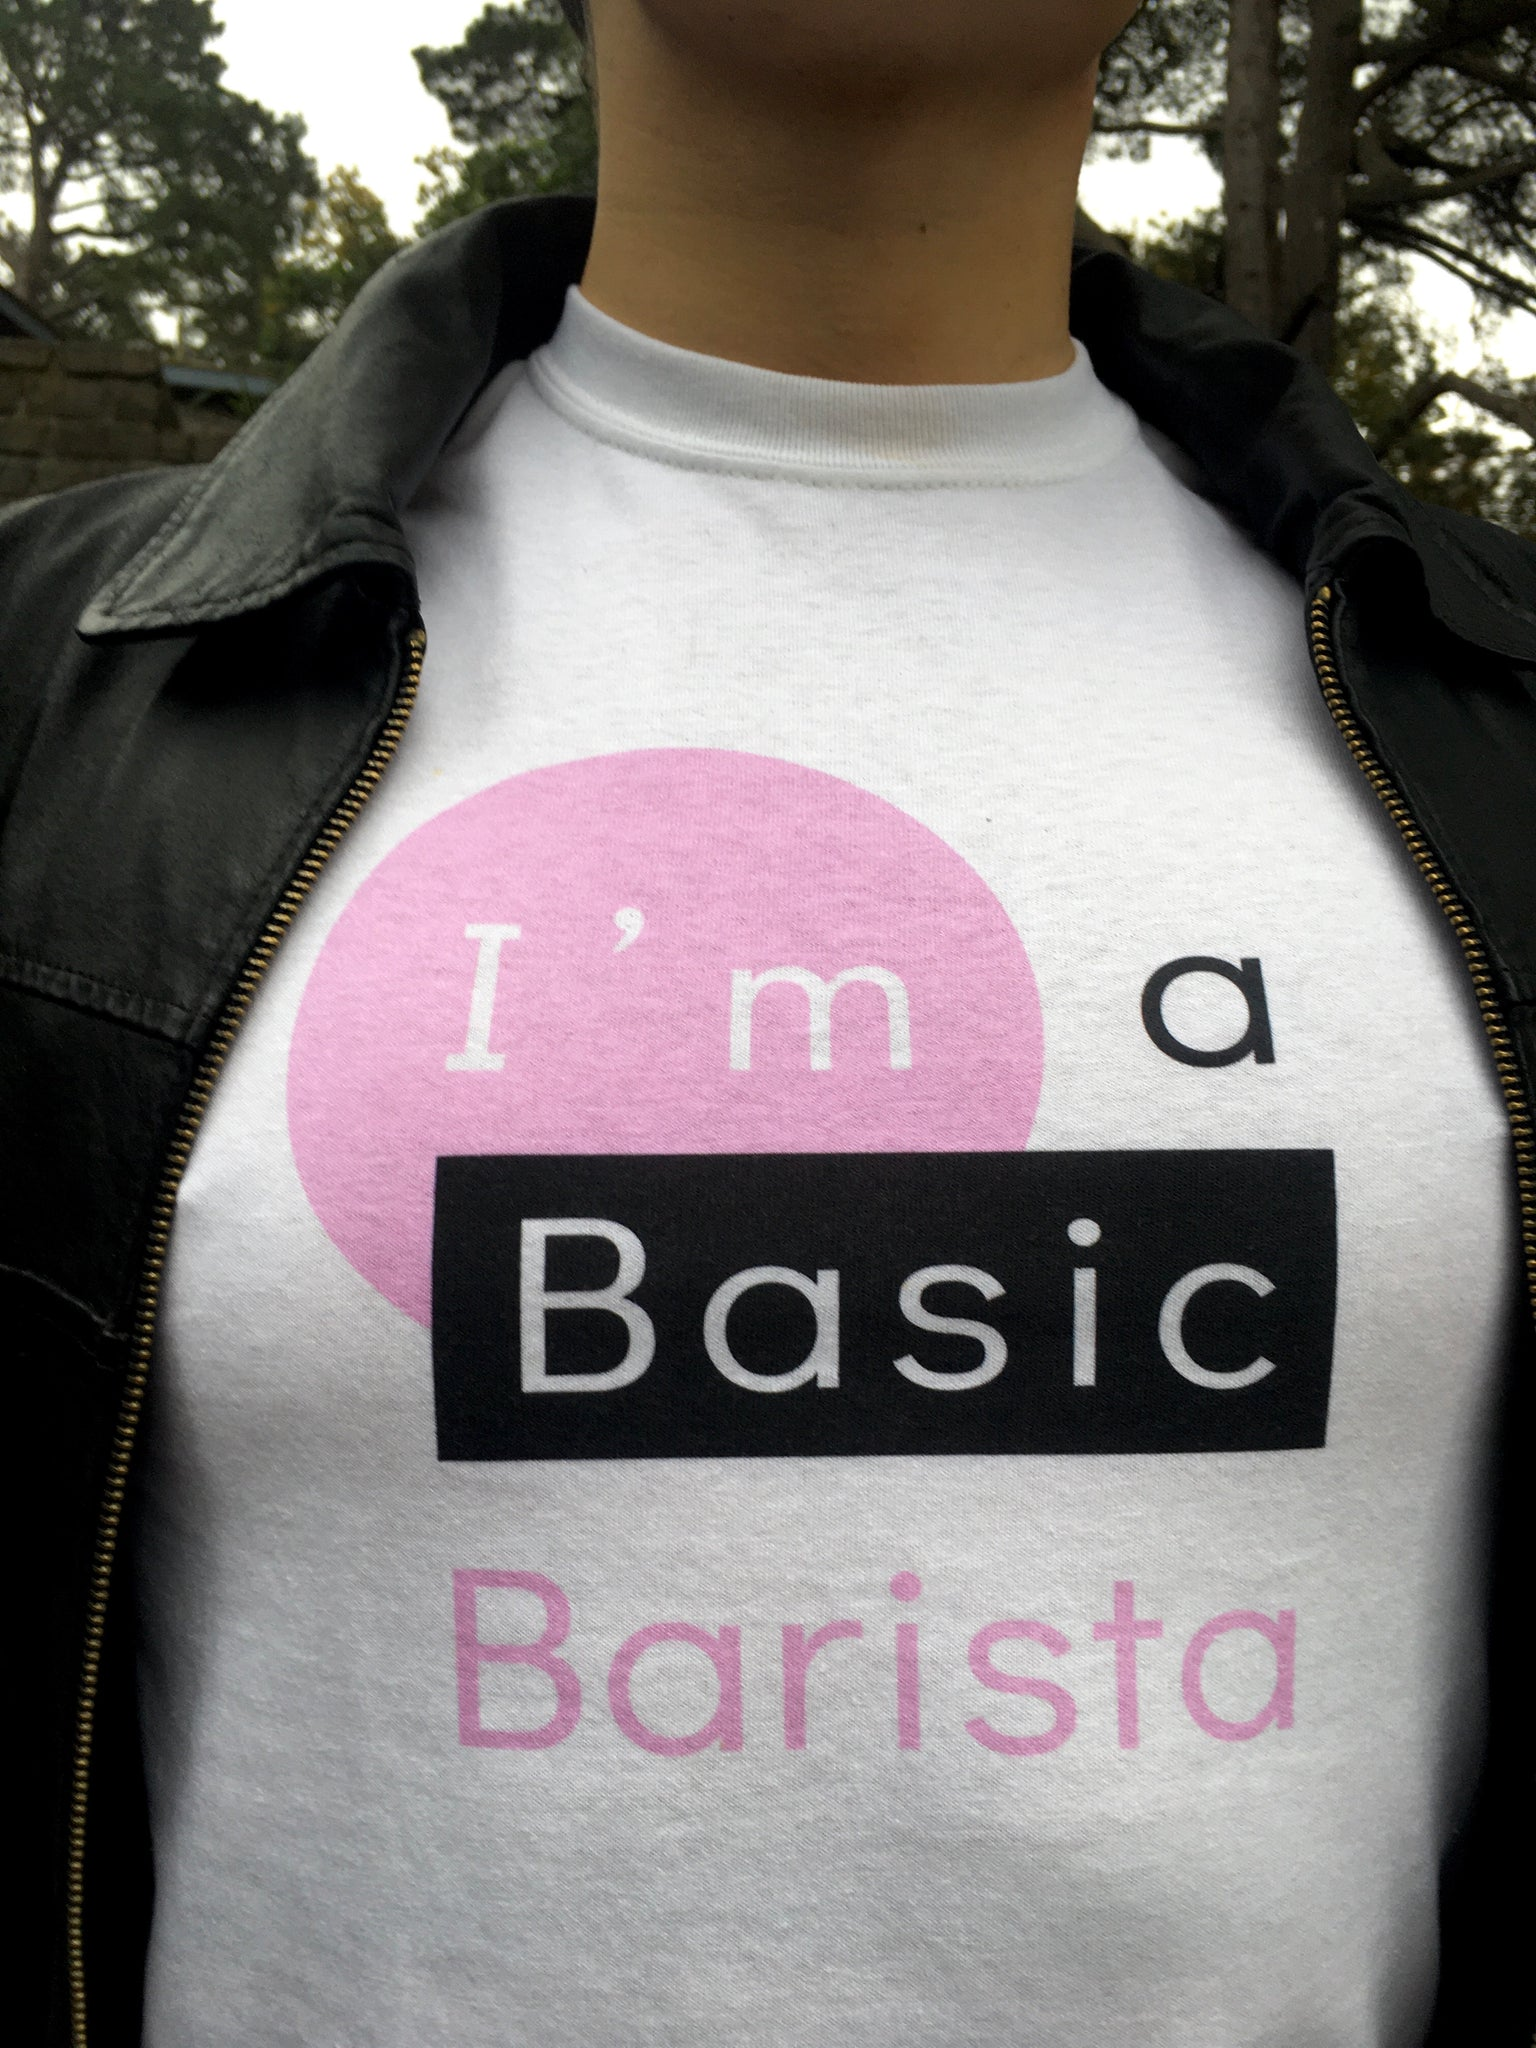 Unisex Basic Barista Cotton Tee Design